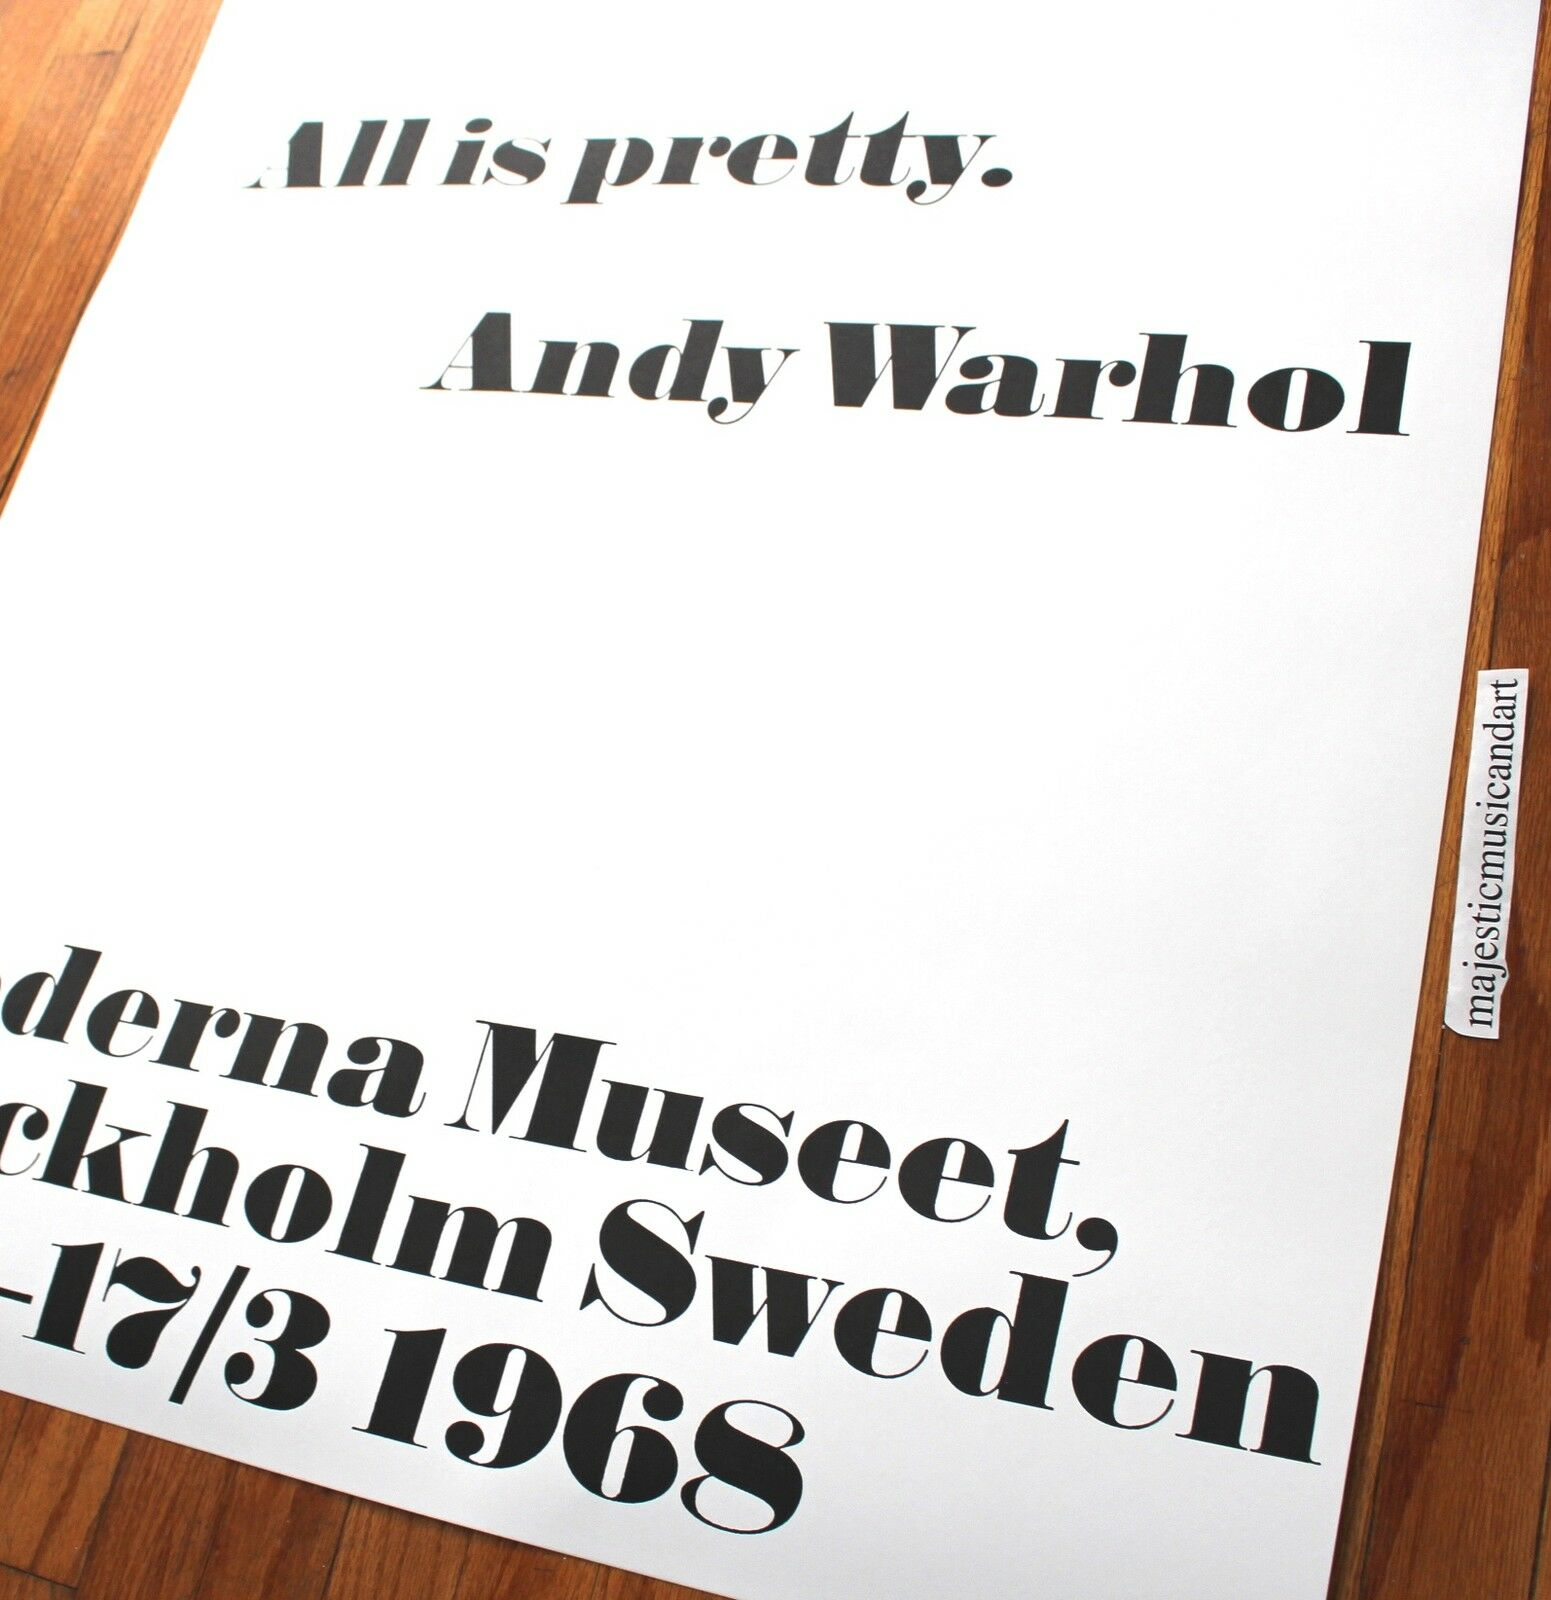 andy warhol all is pretty sweden gallery poster mint huge rare eur 207 30 picclick ie. Black Bedroom Furniture Sets. Home Design Ideas